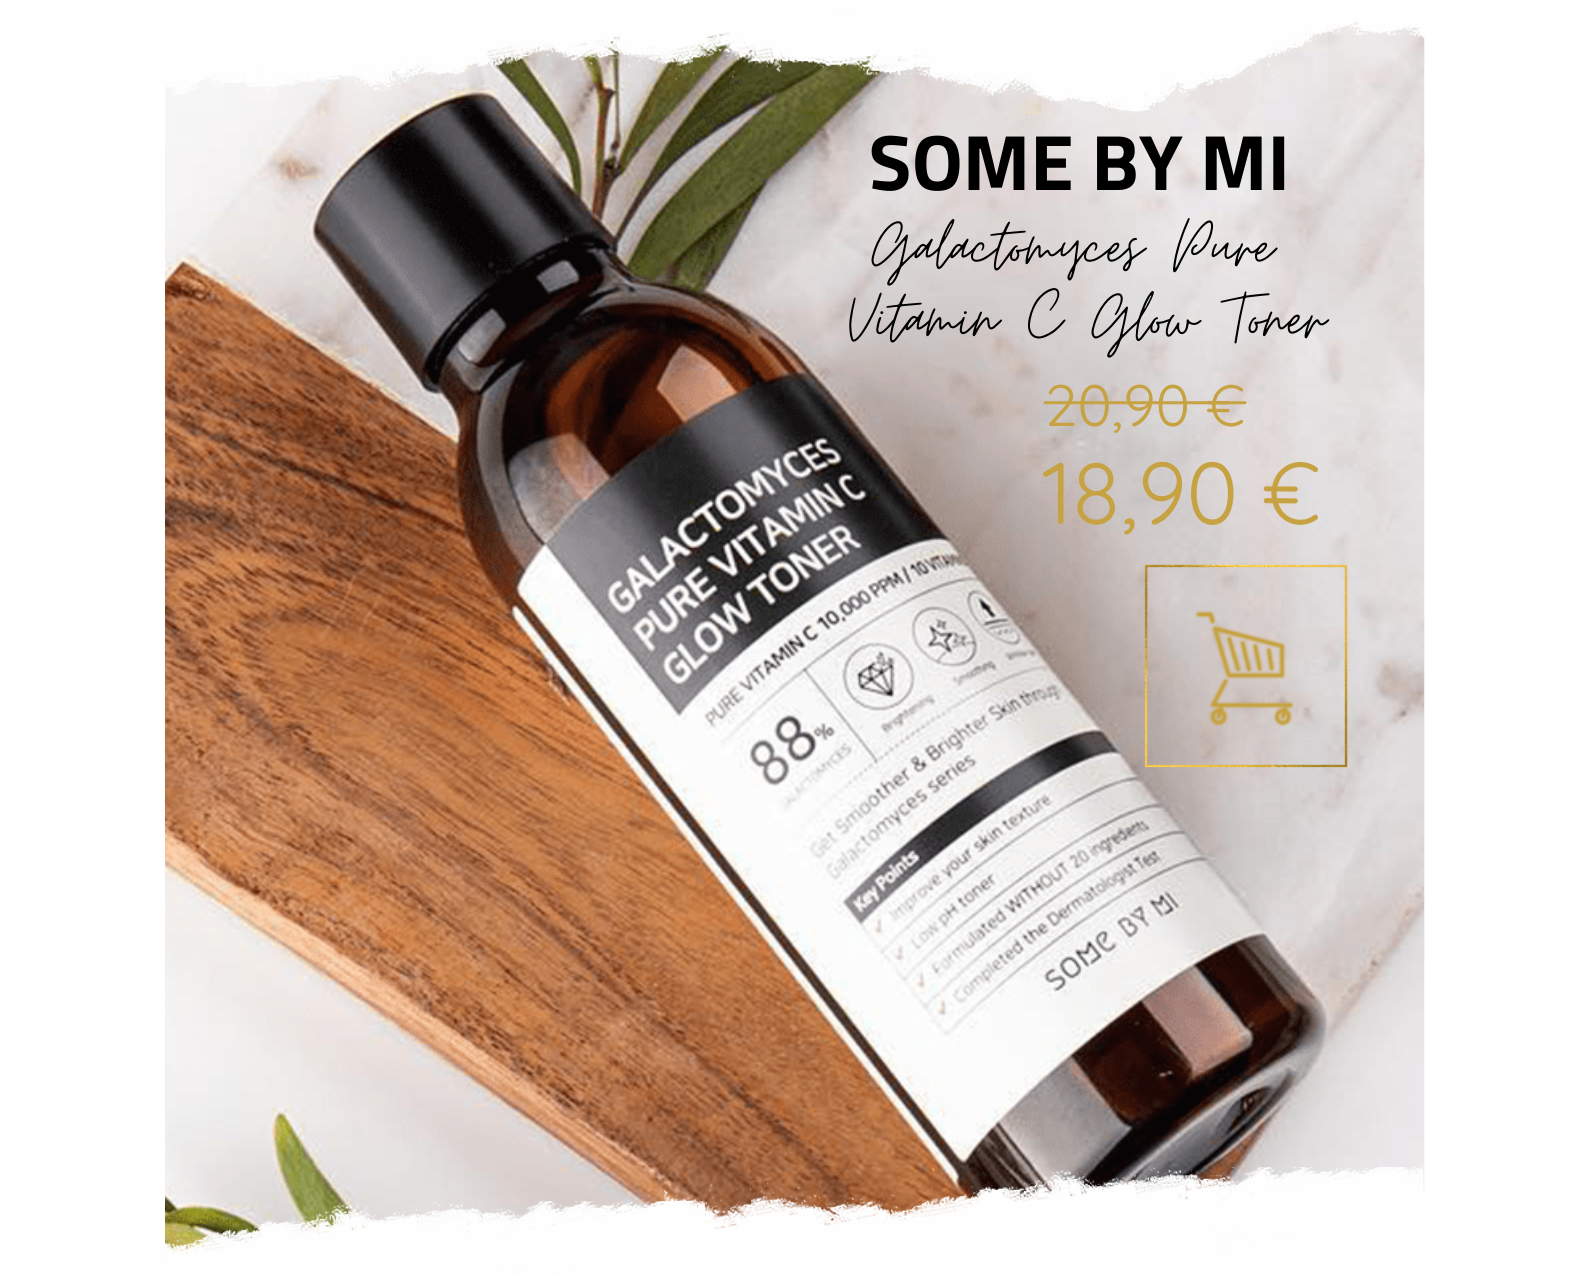 SOMEBYMI Galactomyces Pure Vitamin C Glow Toner